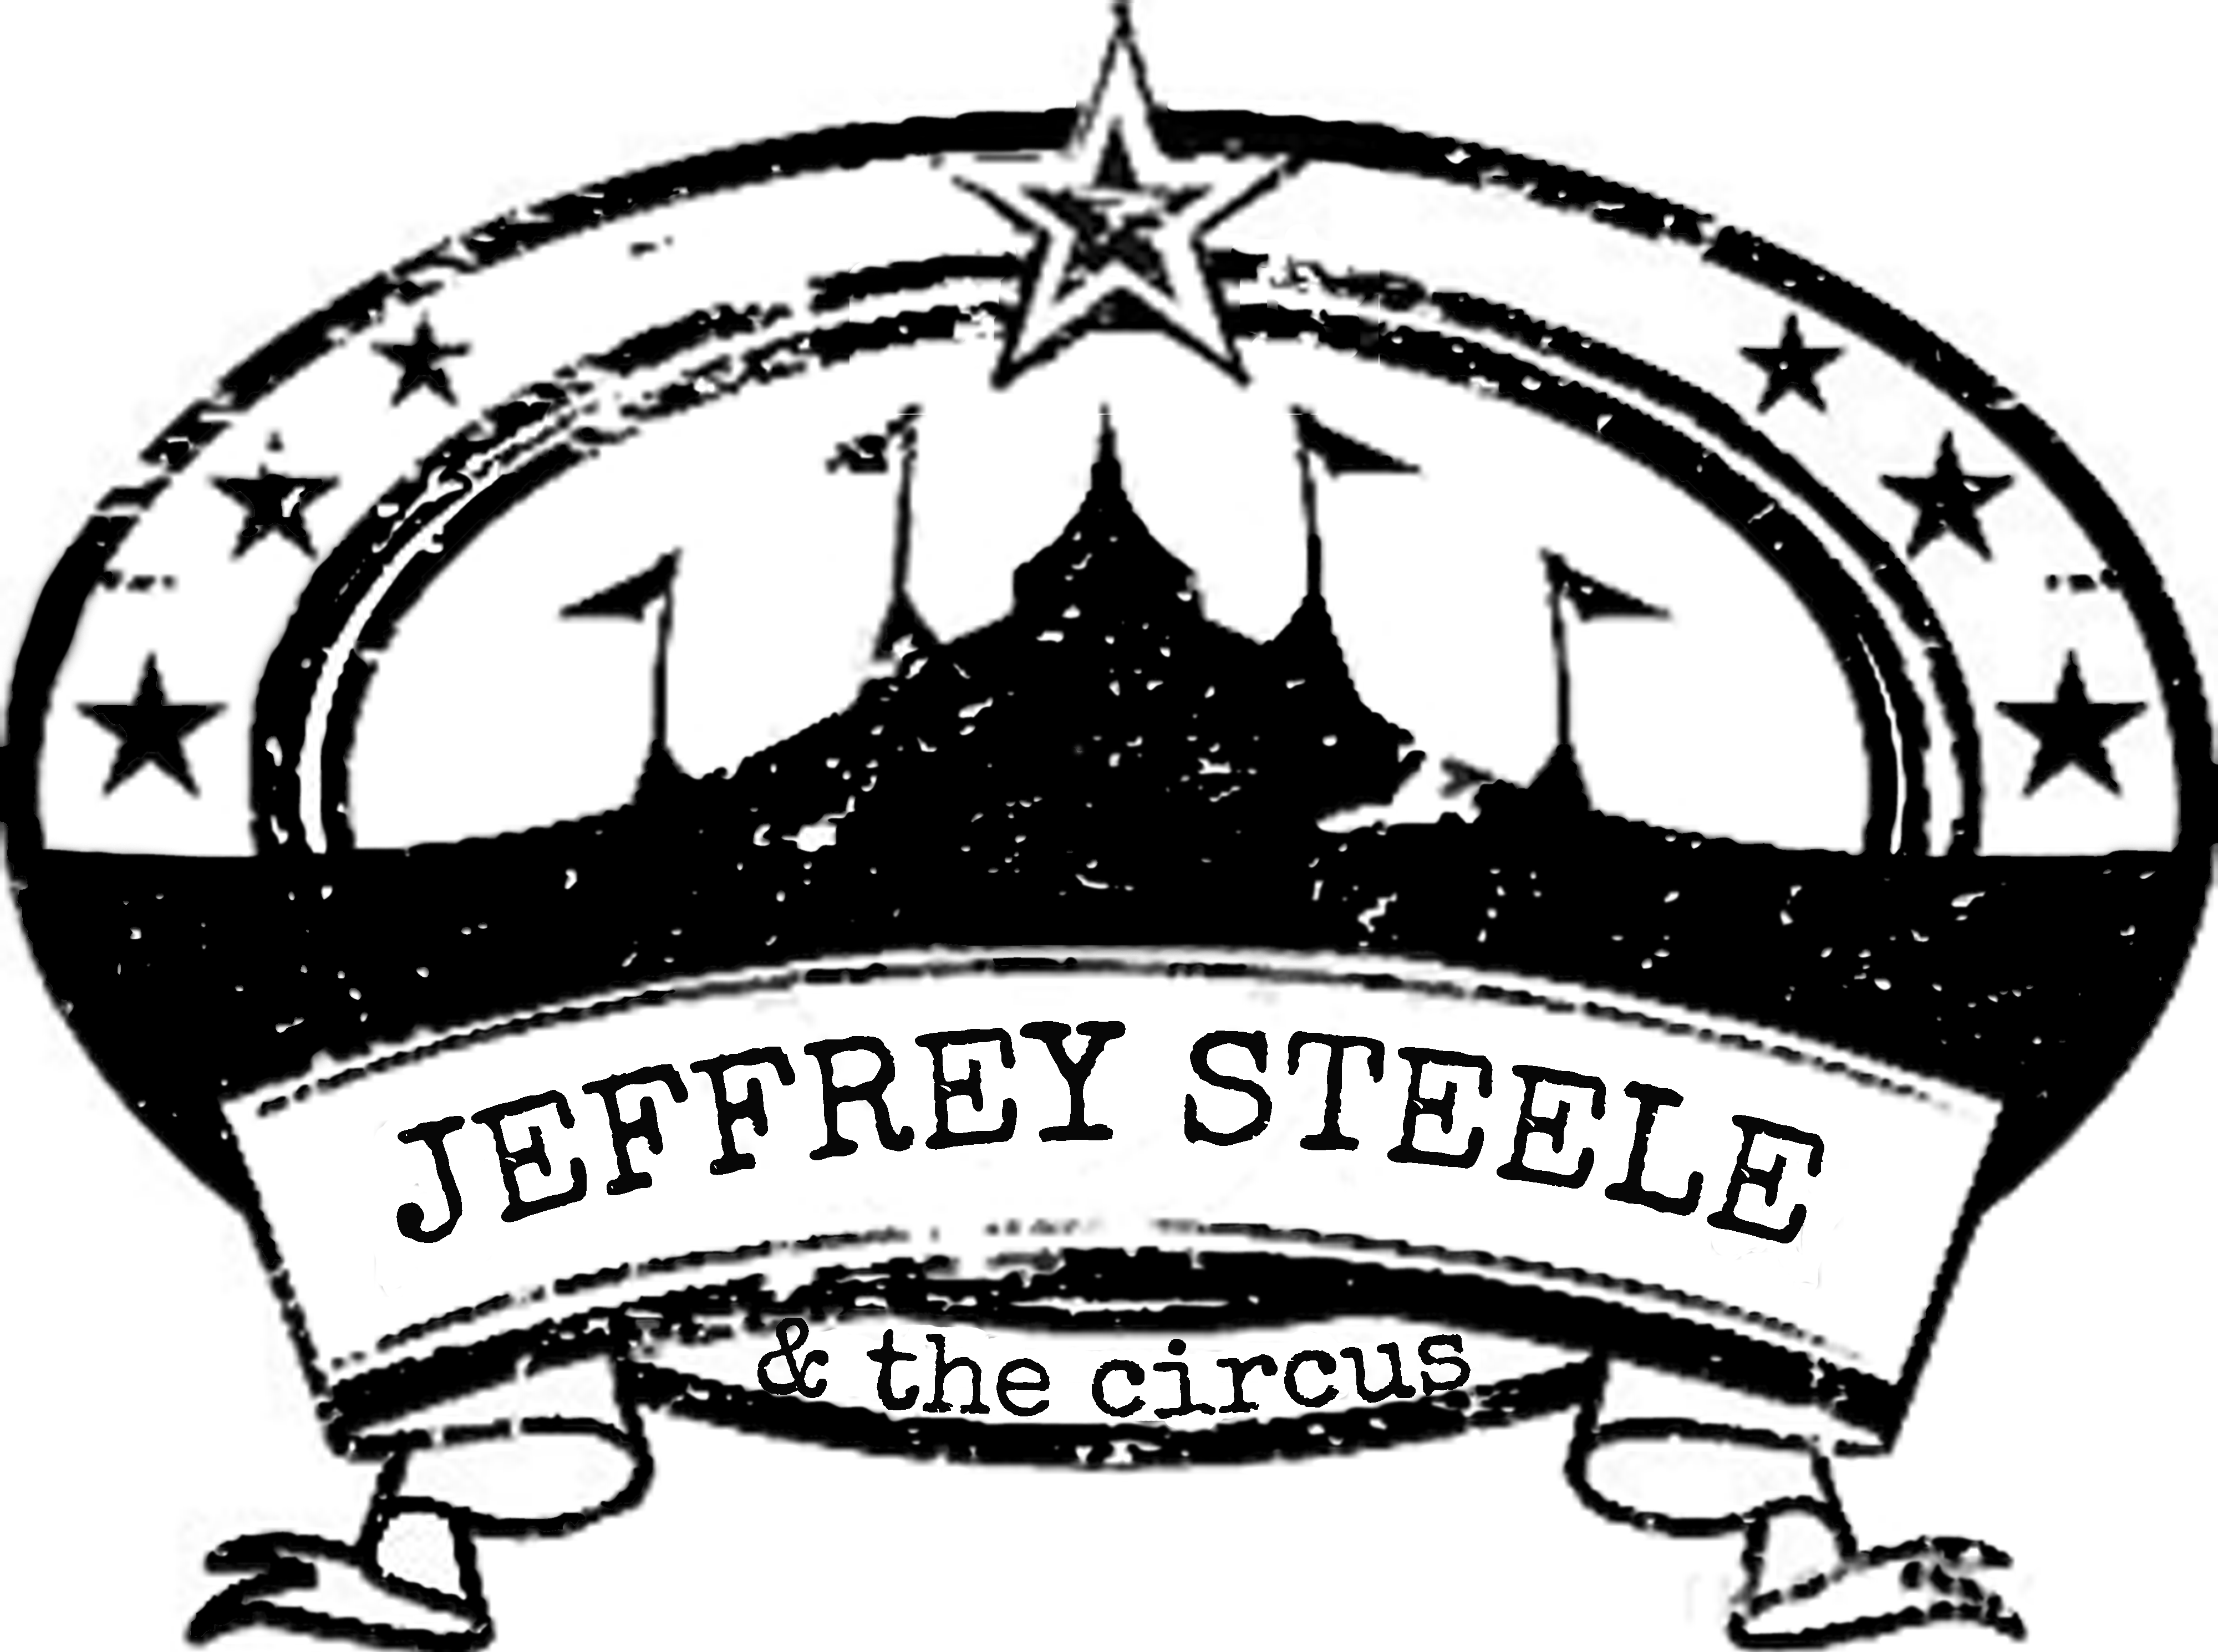 Jeffrey Steele and the Circus